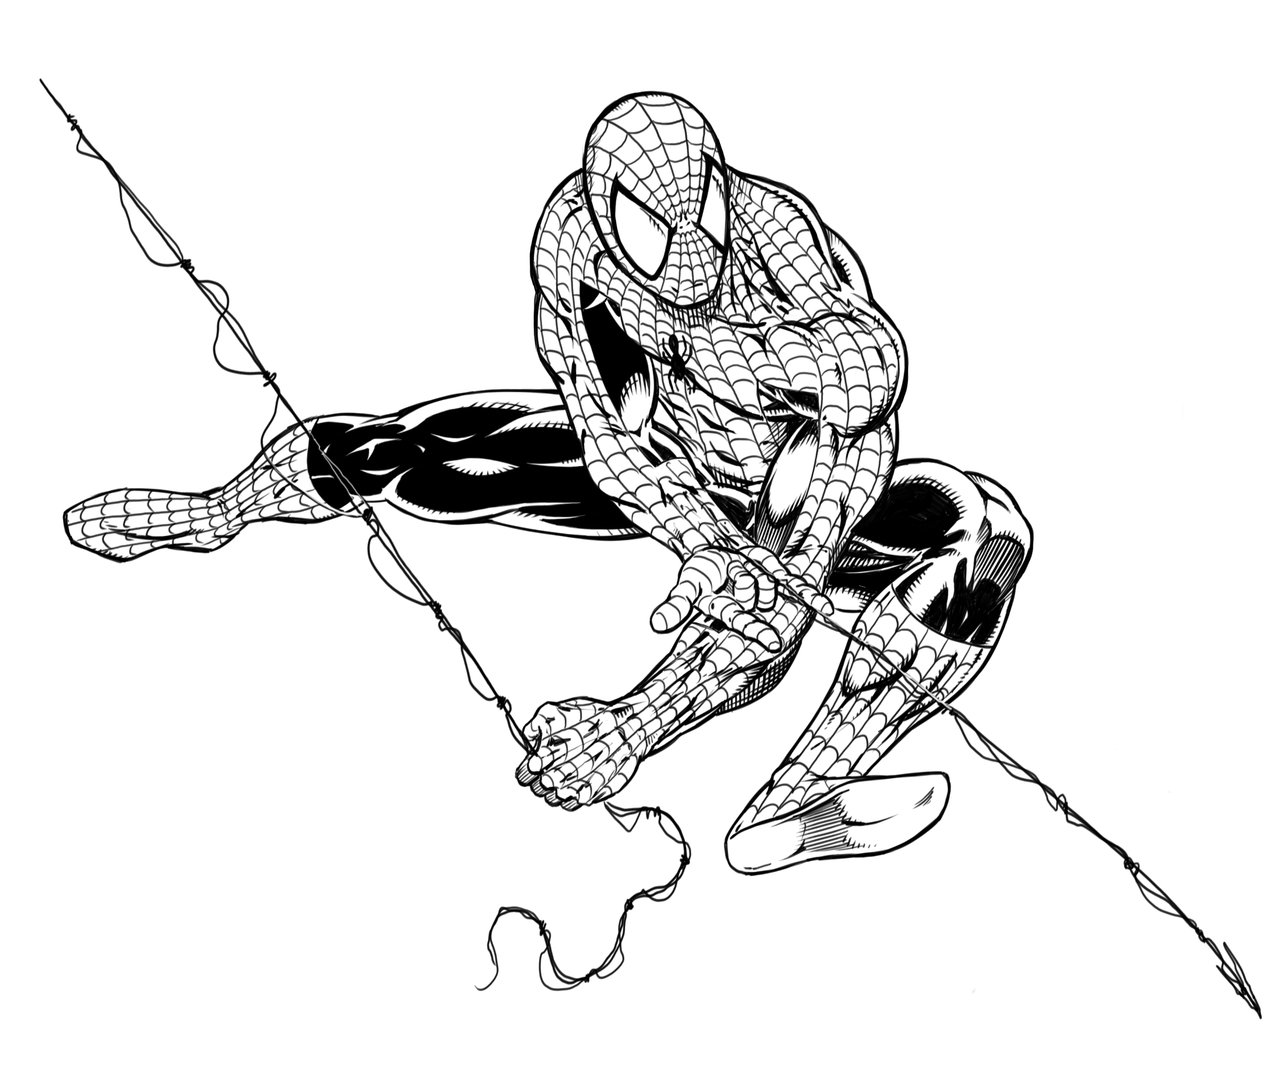 spiderman outline spiderman outline drawing at getdrawings free download outline spiderman 1 2